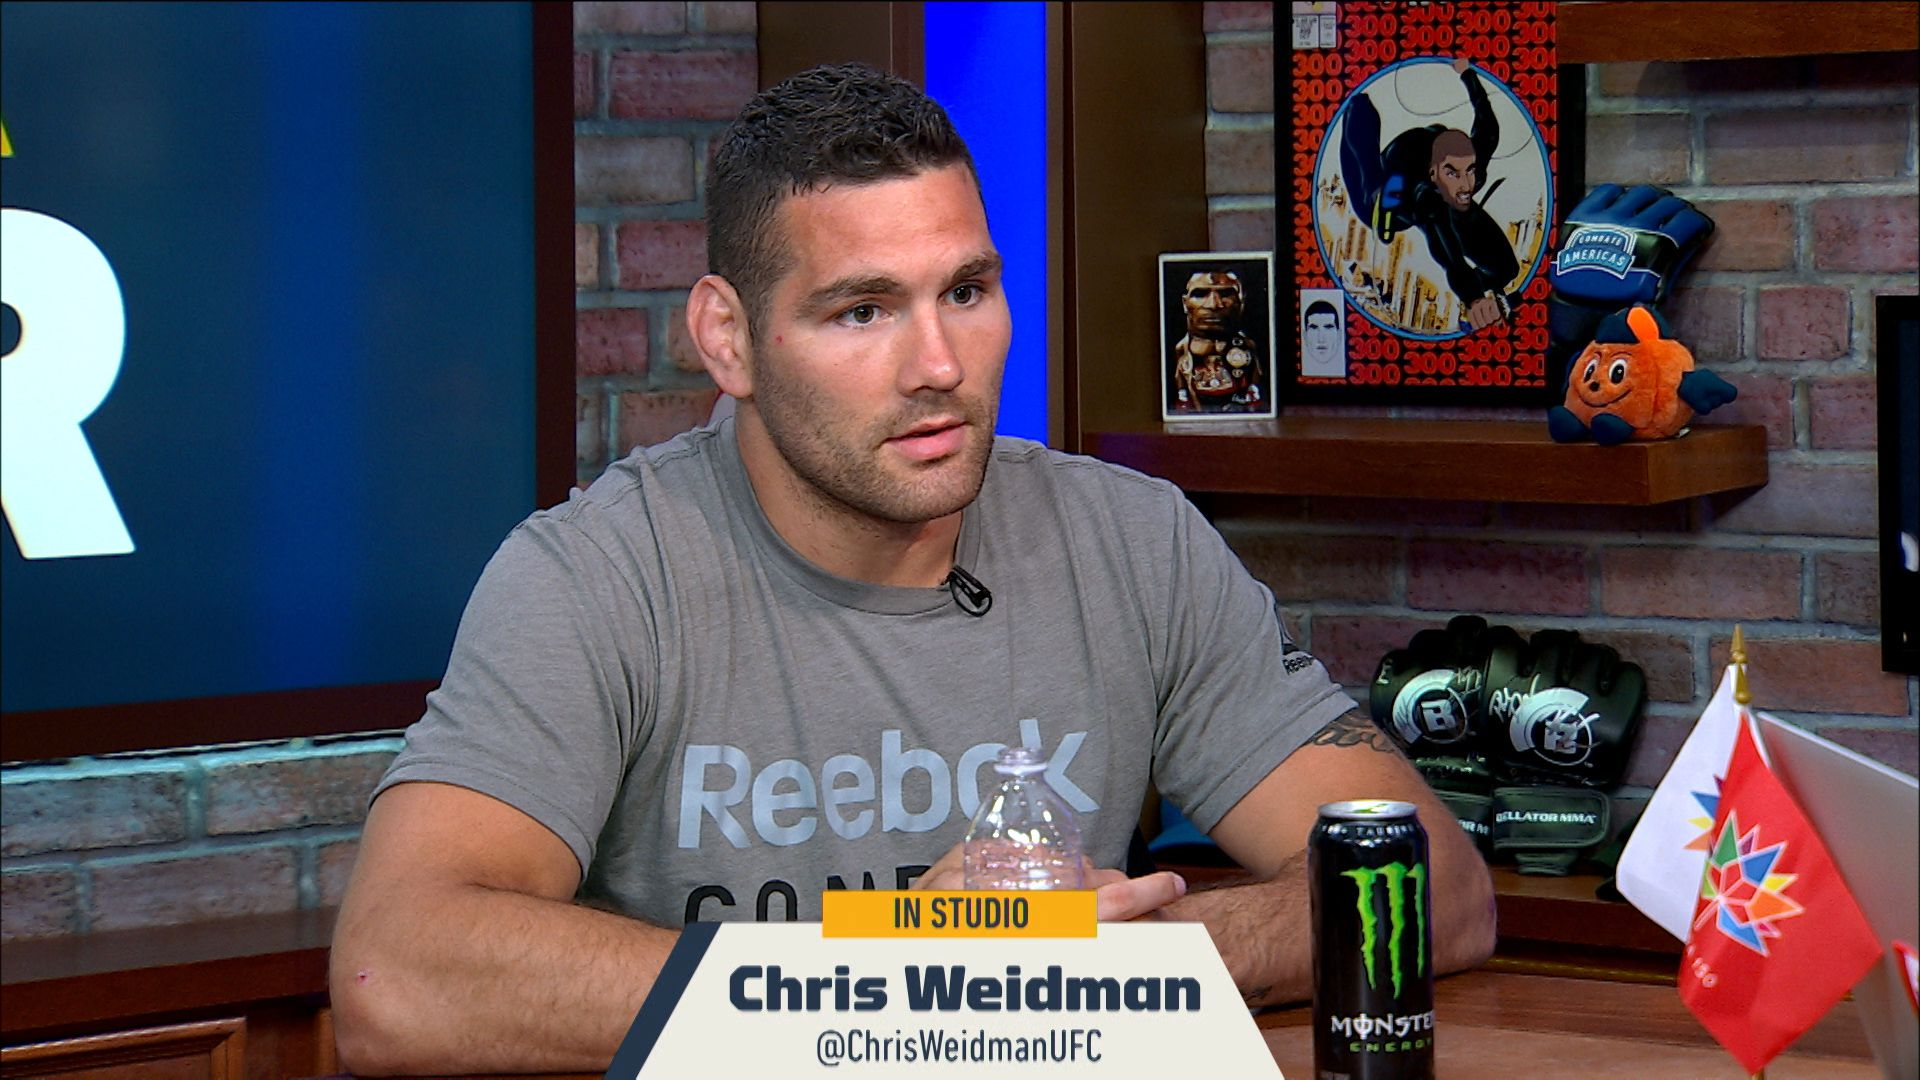 Chris Weidman tears up during interview when he recounts how his daughter learned of his loss to Jacare - Weidman